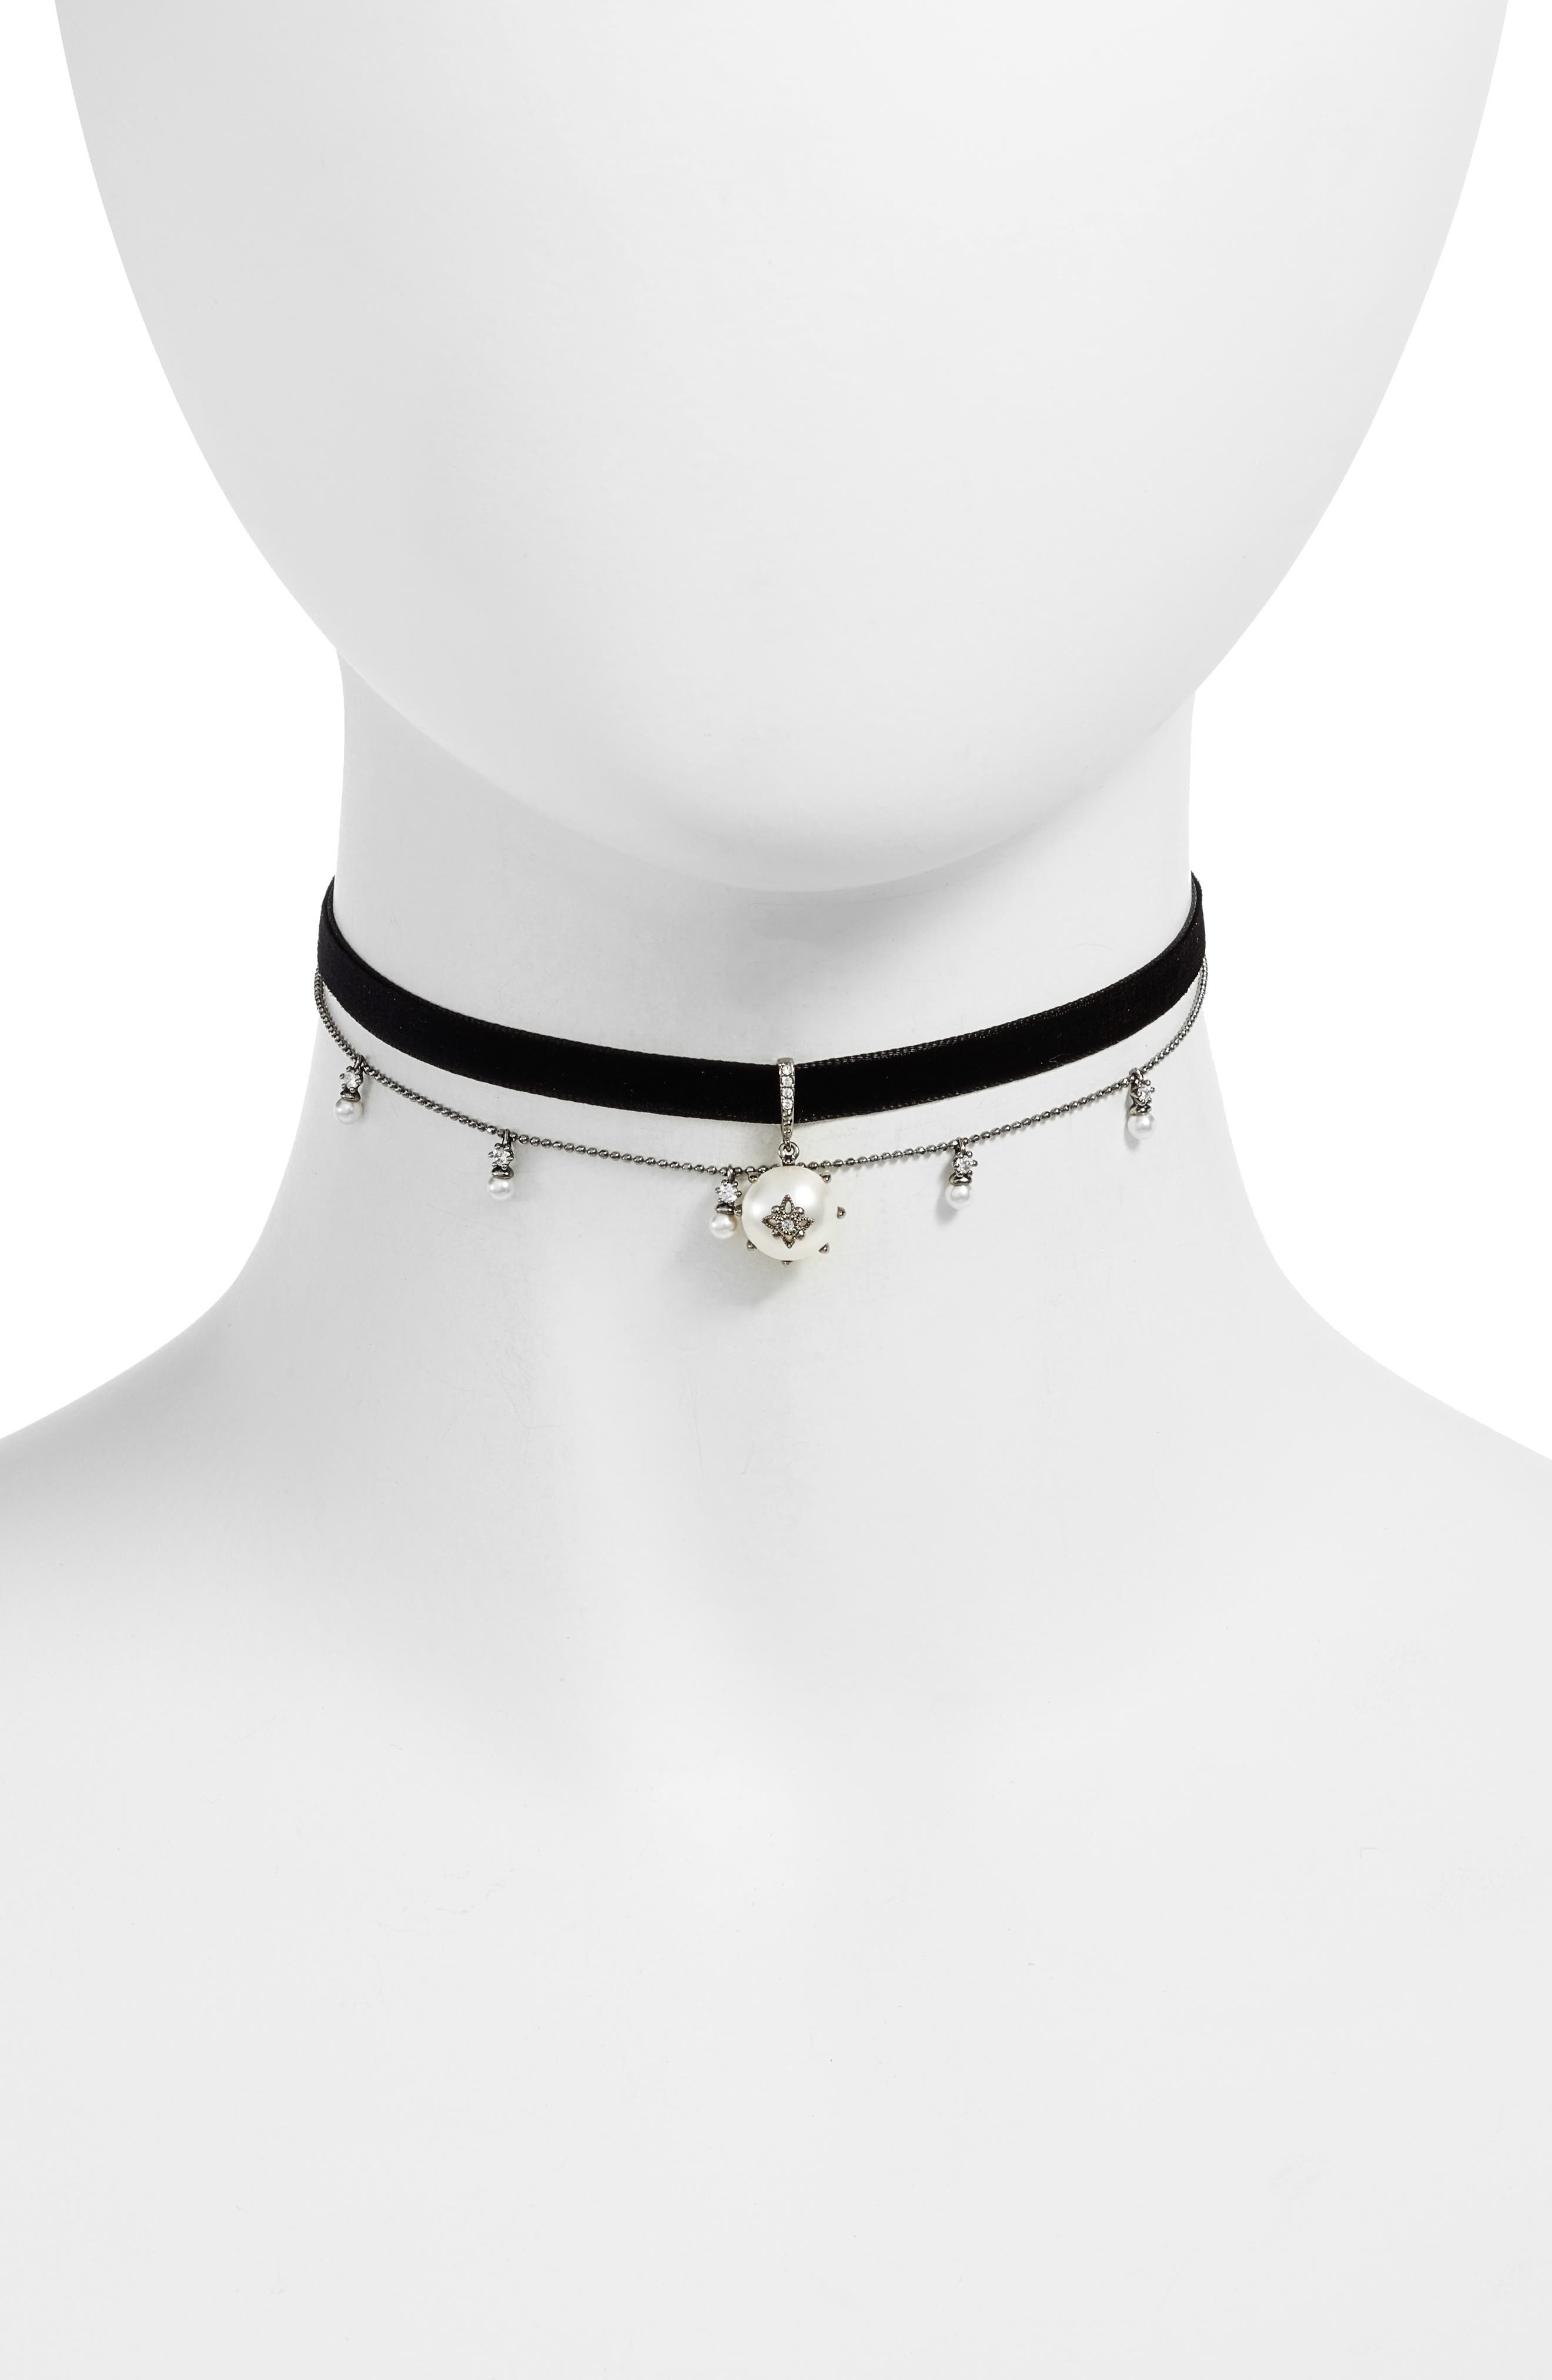 Alternate Image 1 Selected - Nadri Coquette Faux Pearl Layered Choker Necklace